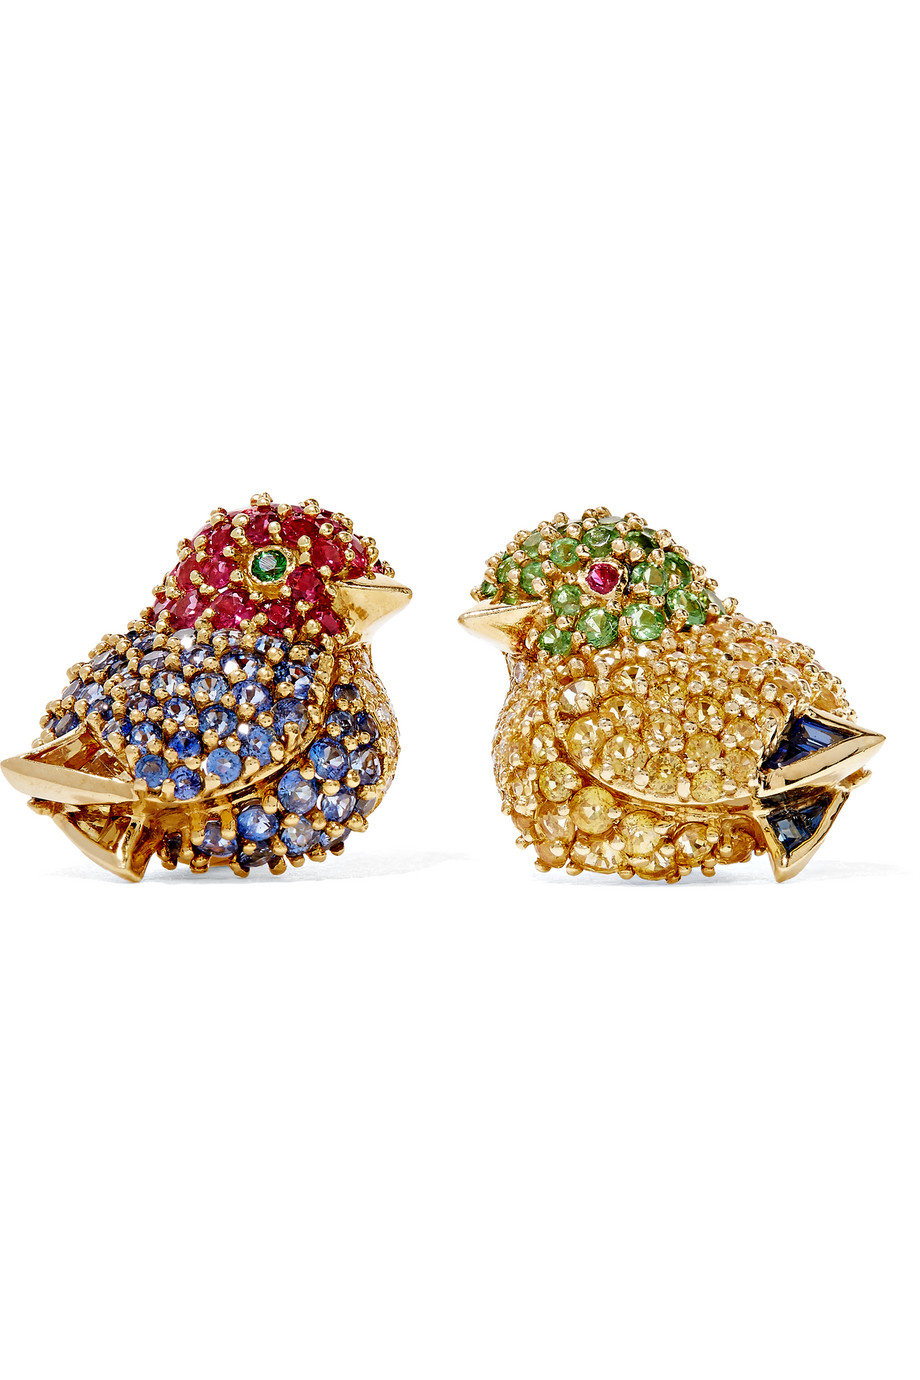 Fred Leighton Contemporary 18-Karat Gold Multi-Stone Clip Earrings, Women's